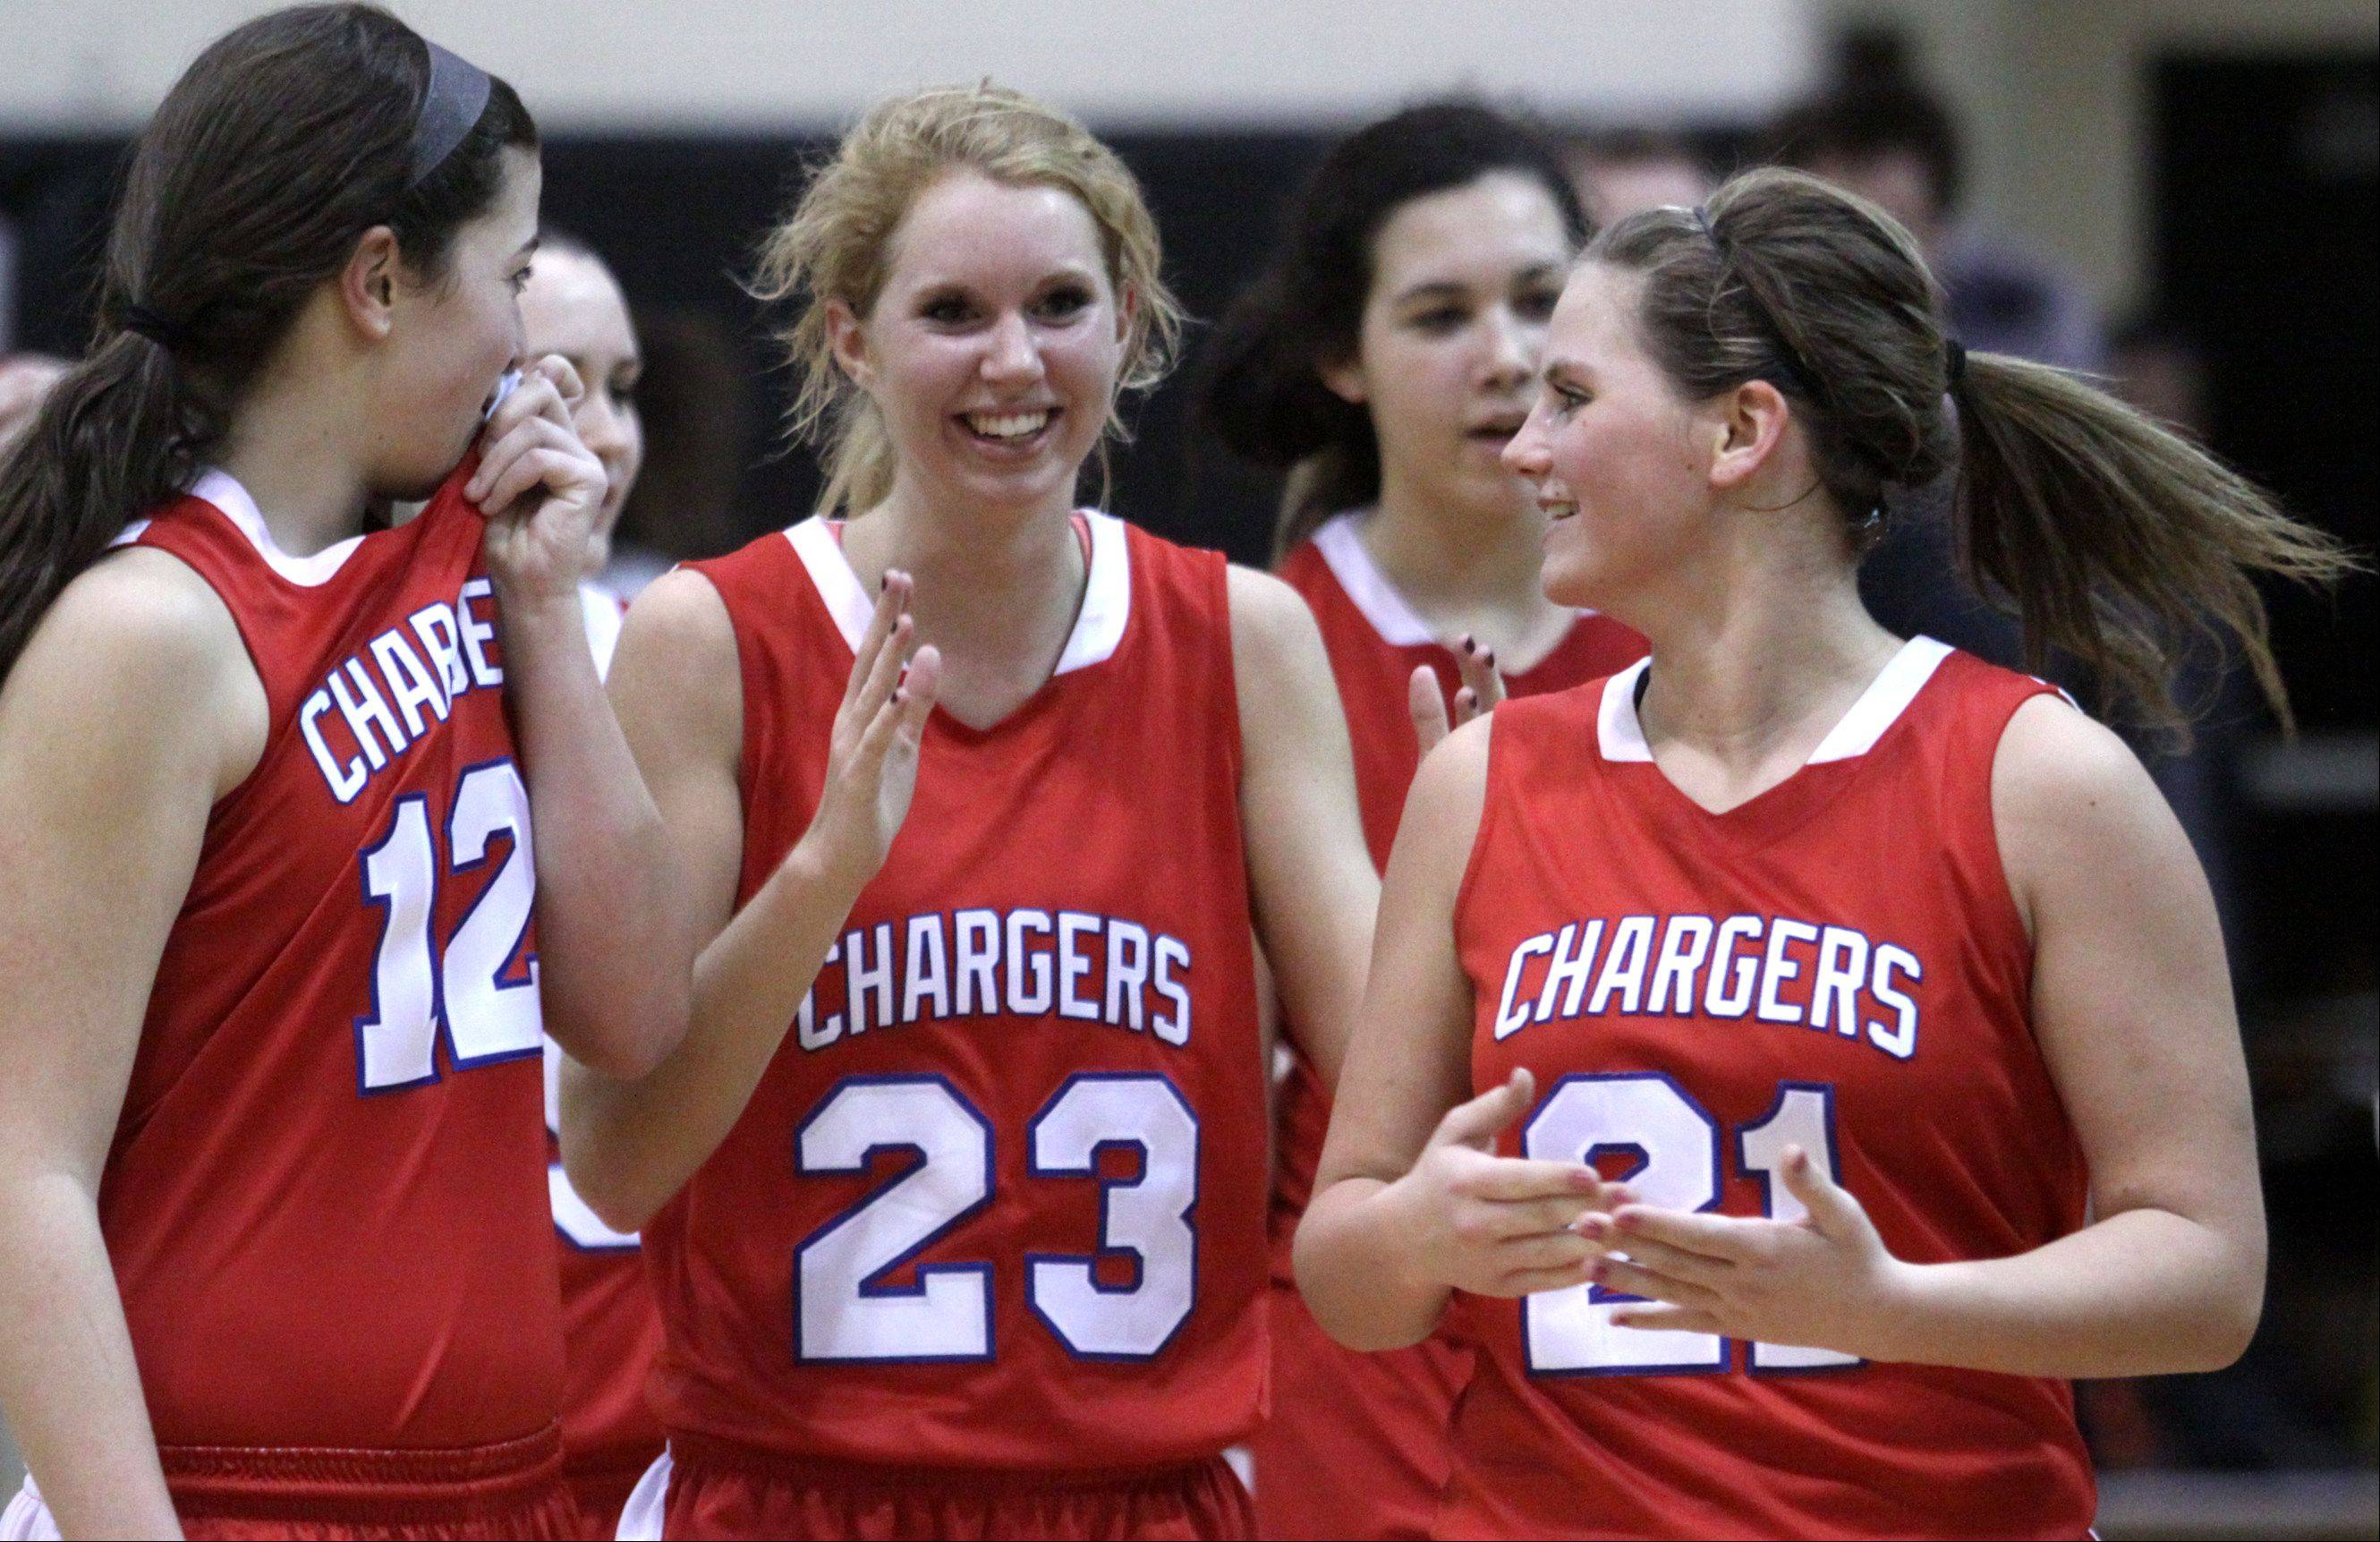 Images: Jacobs vs. Dundee-Crown, girls basketball